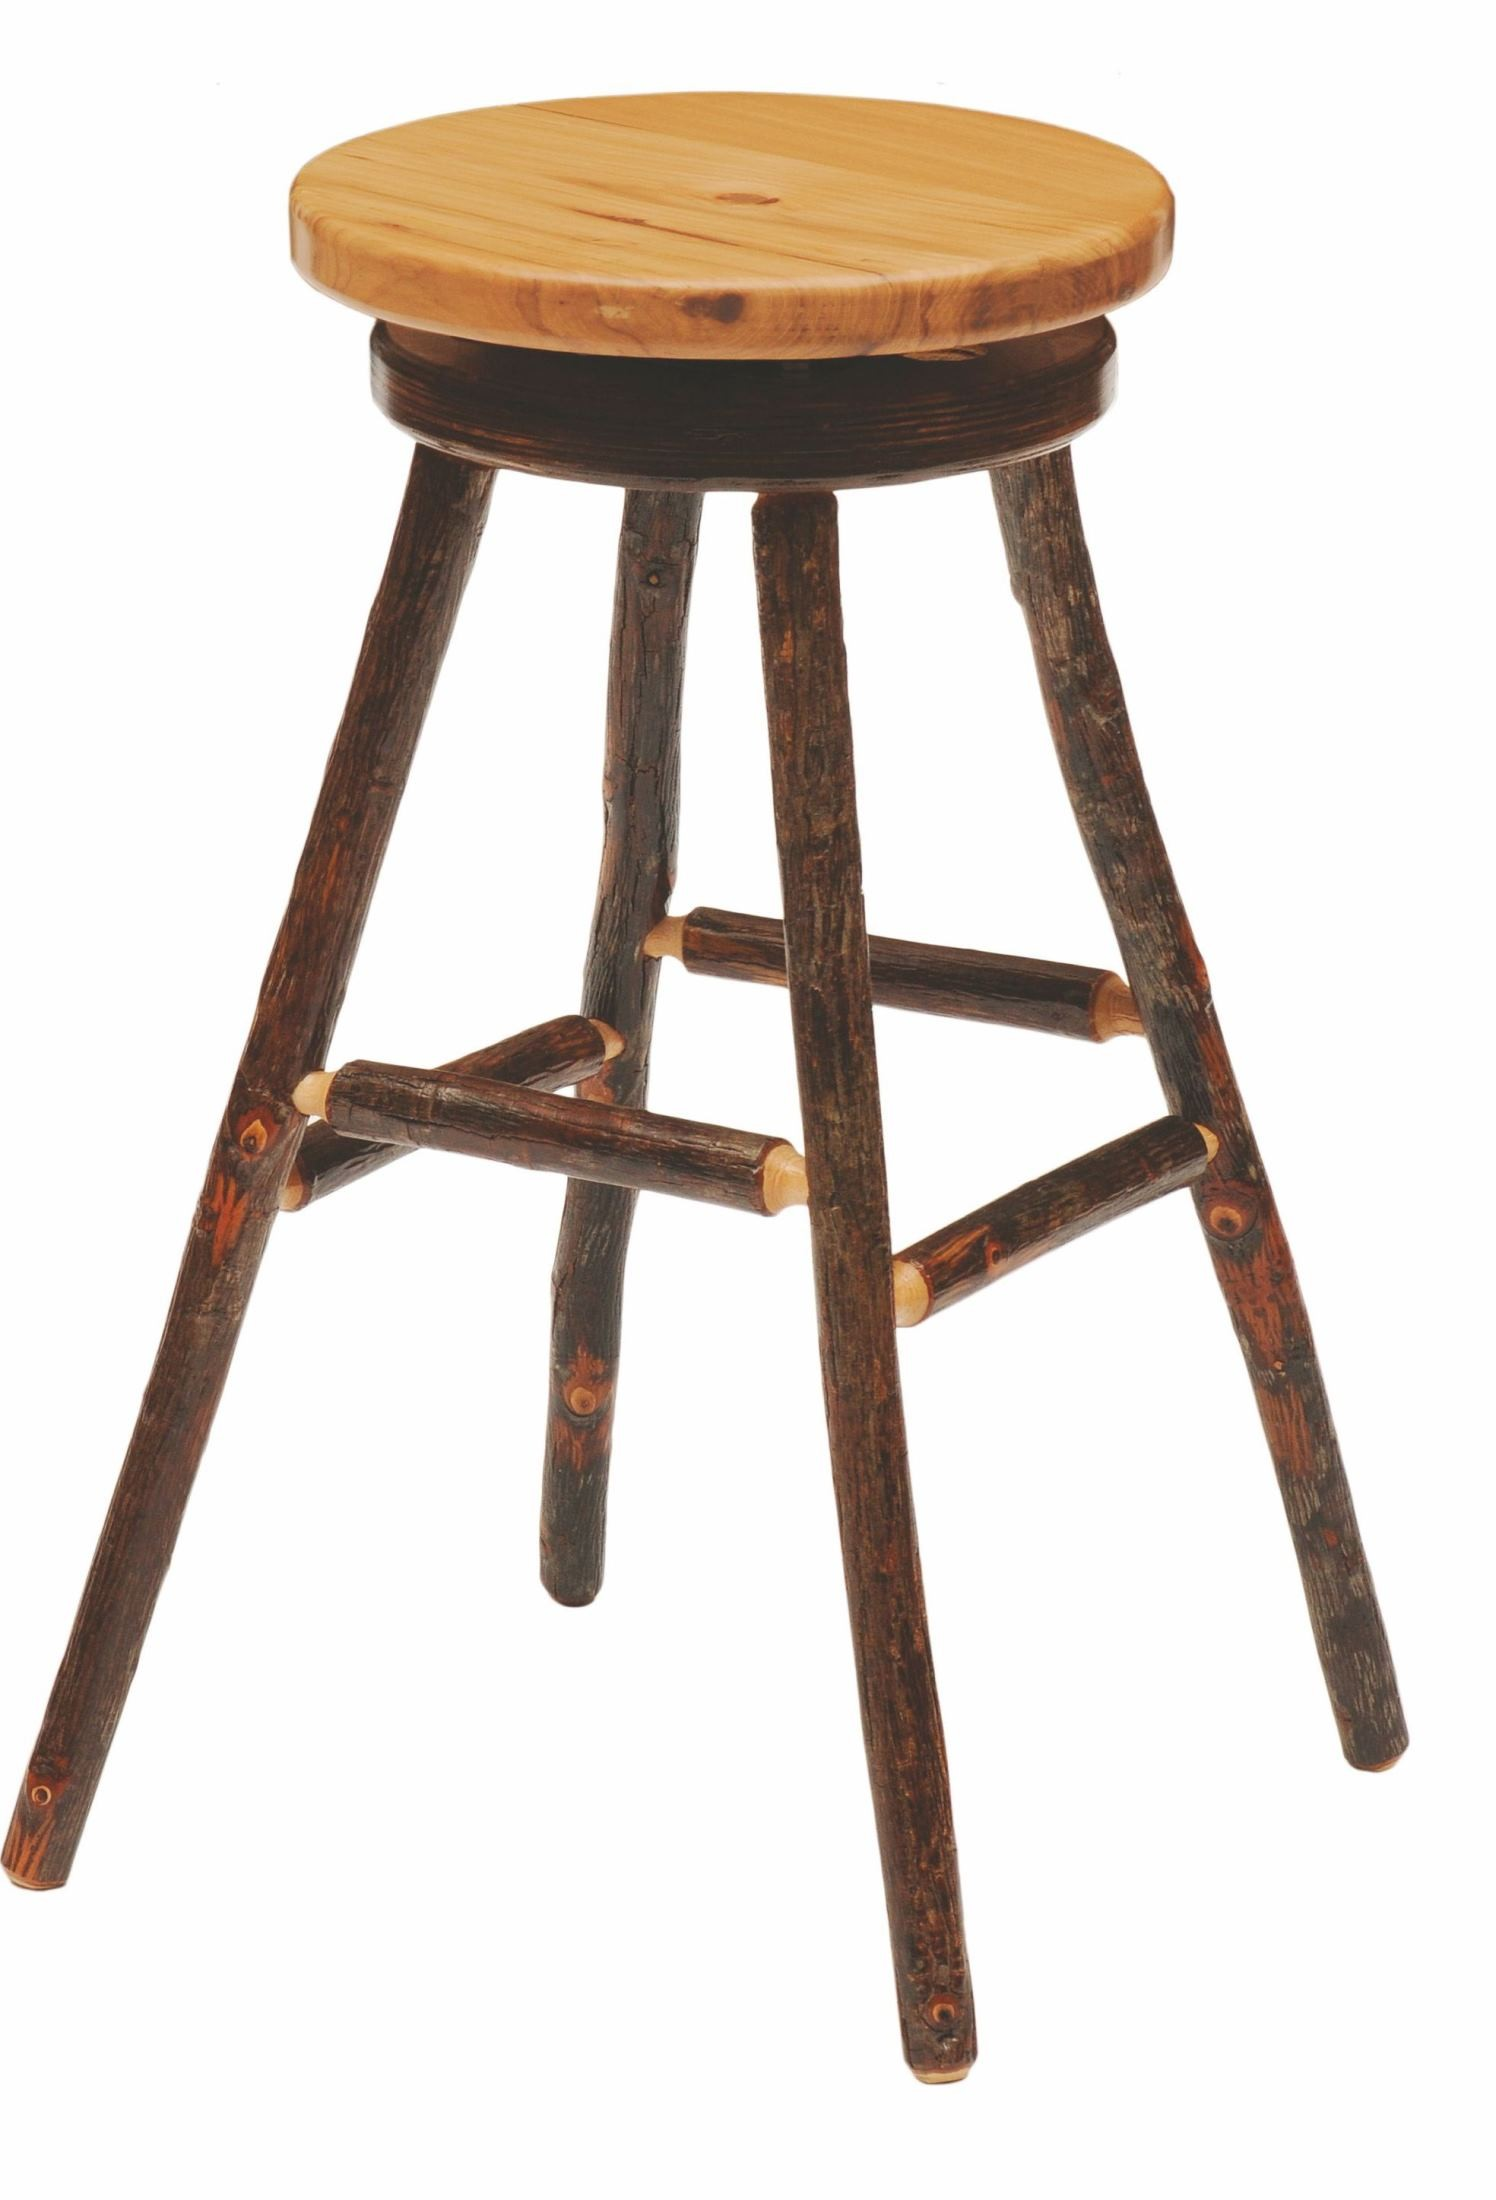 Hickory Hickory Seat 30 Quot Swivel Round Bar Stool From